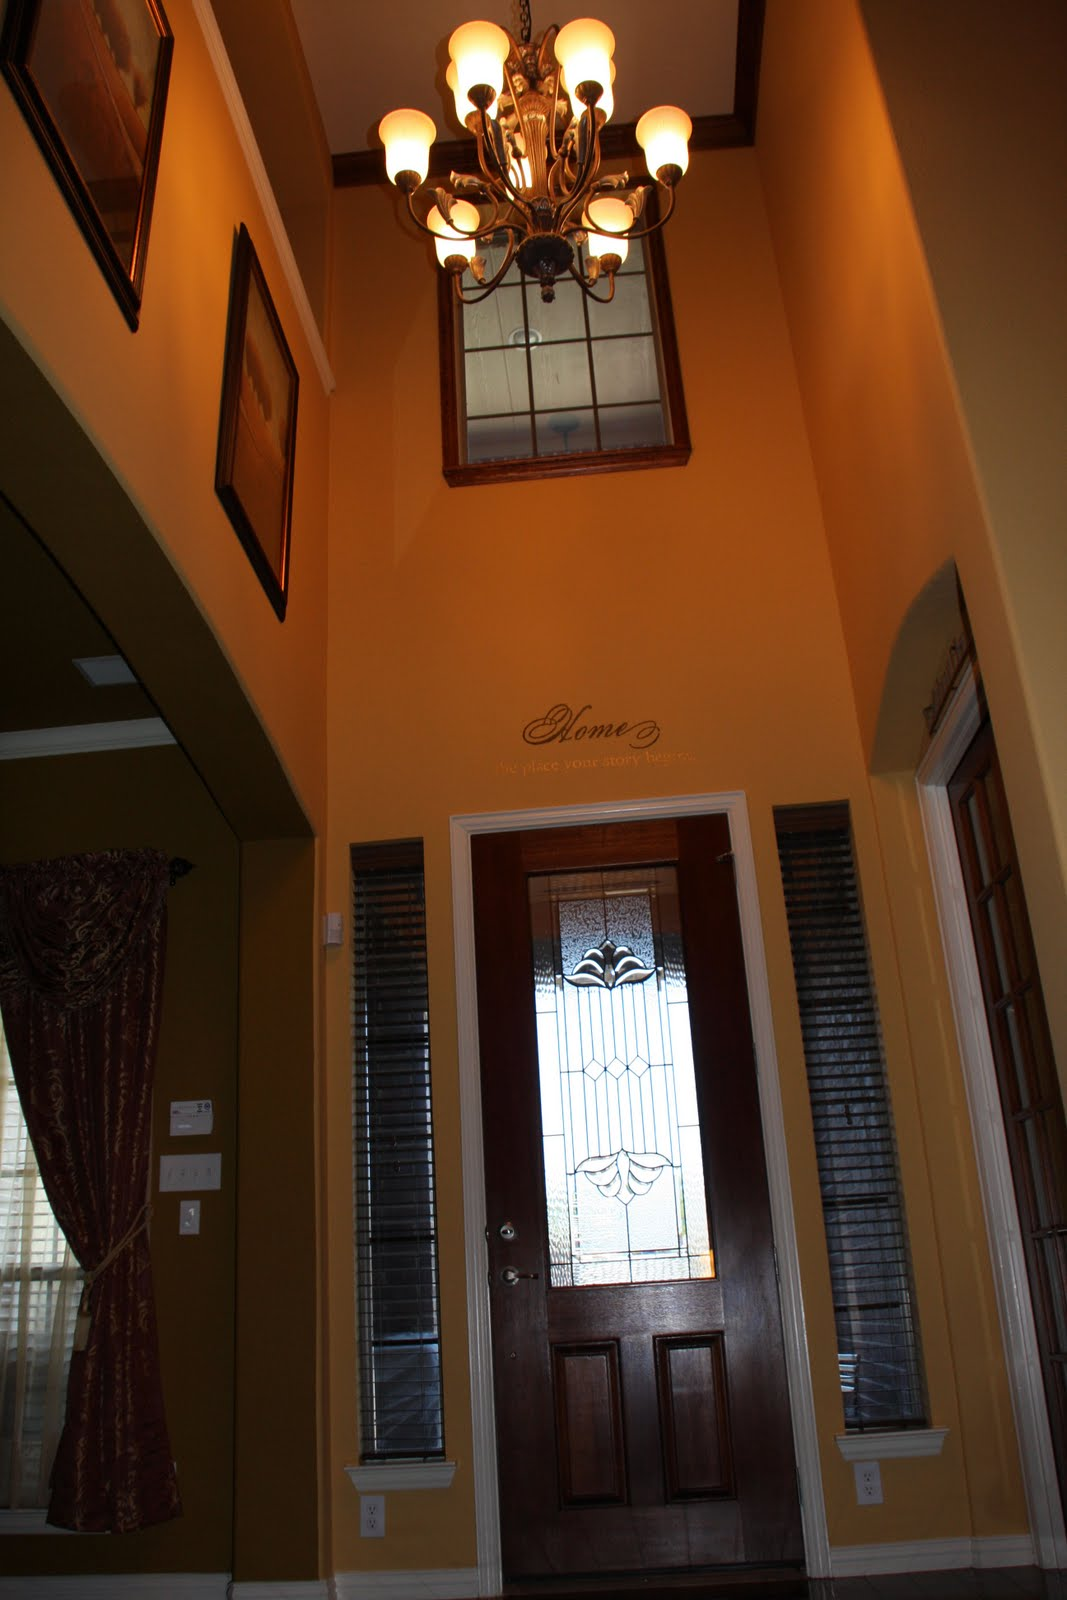 PAPER TRAILS AND SCATTERED PICTURES: SHOW US YOUR FOYER AND ENTRY WAYS